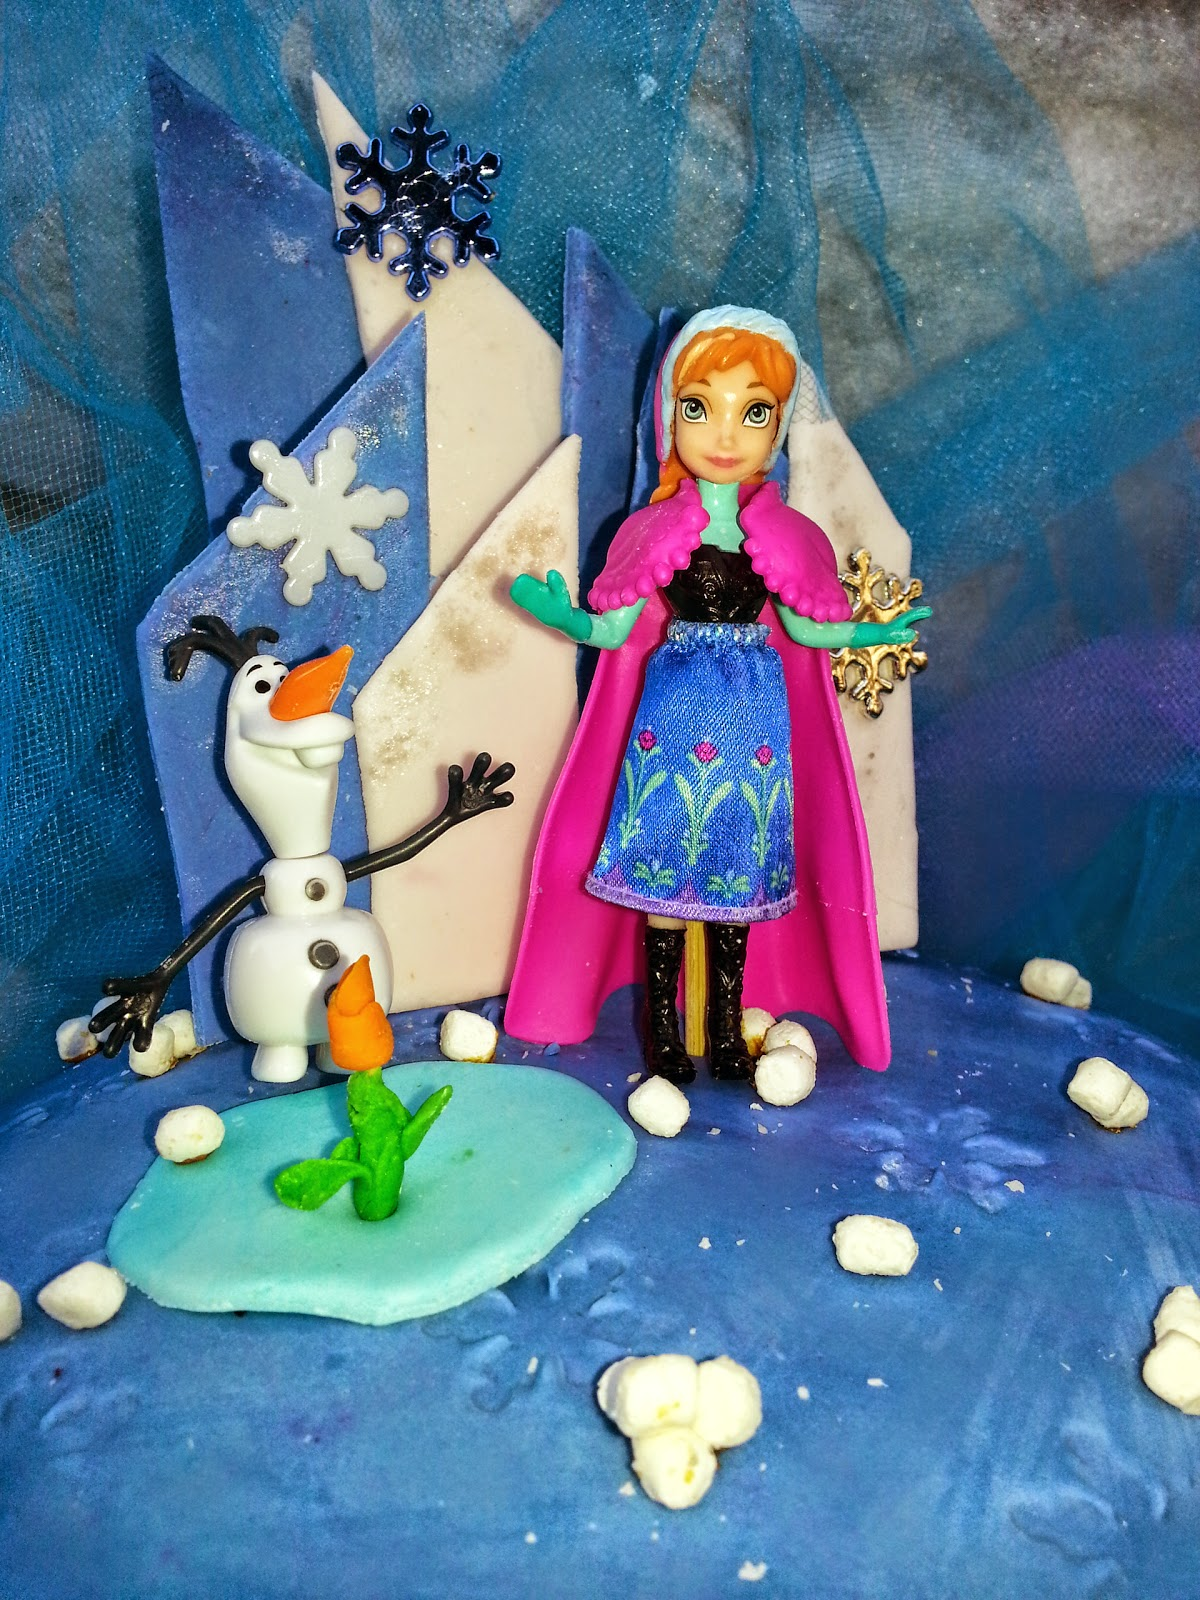 Nana 39 s theme party disney frozen anna and olaf cake - Olaf and anna ...